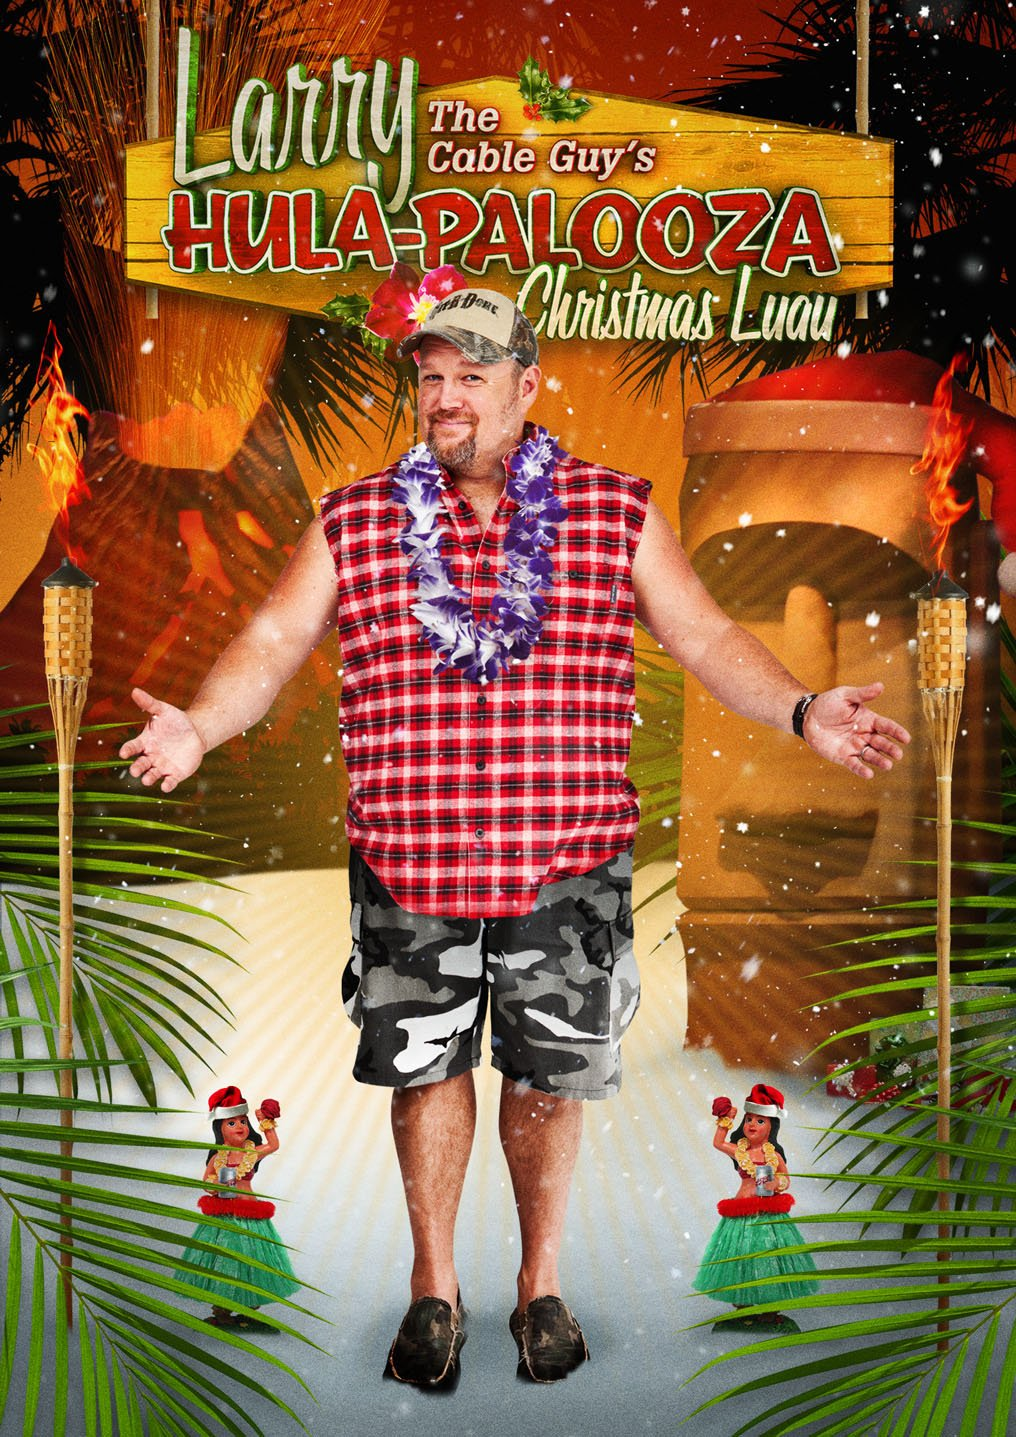 Amazon.com: Larry the Cable Guy's Hula-Palooza Christmas Luau ...